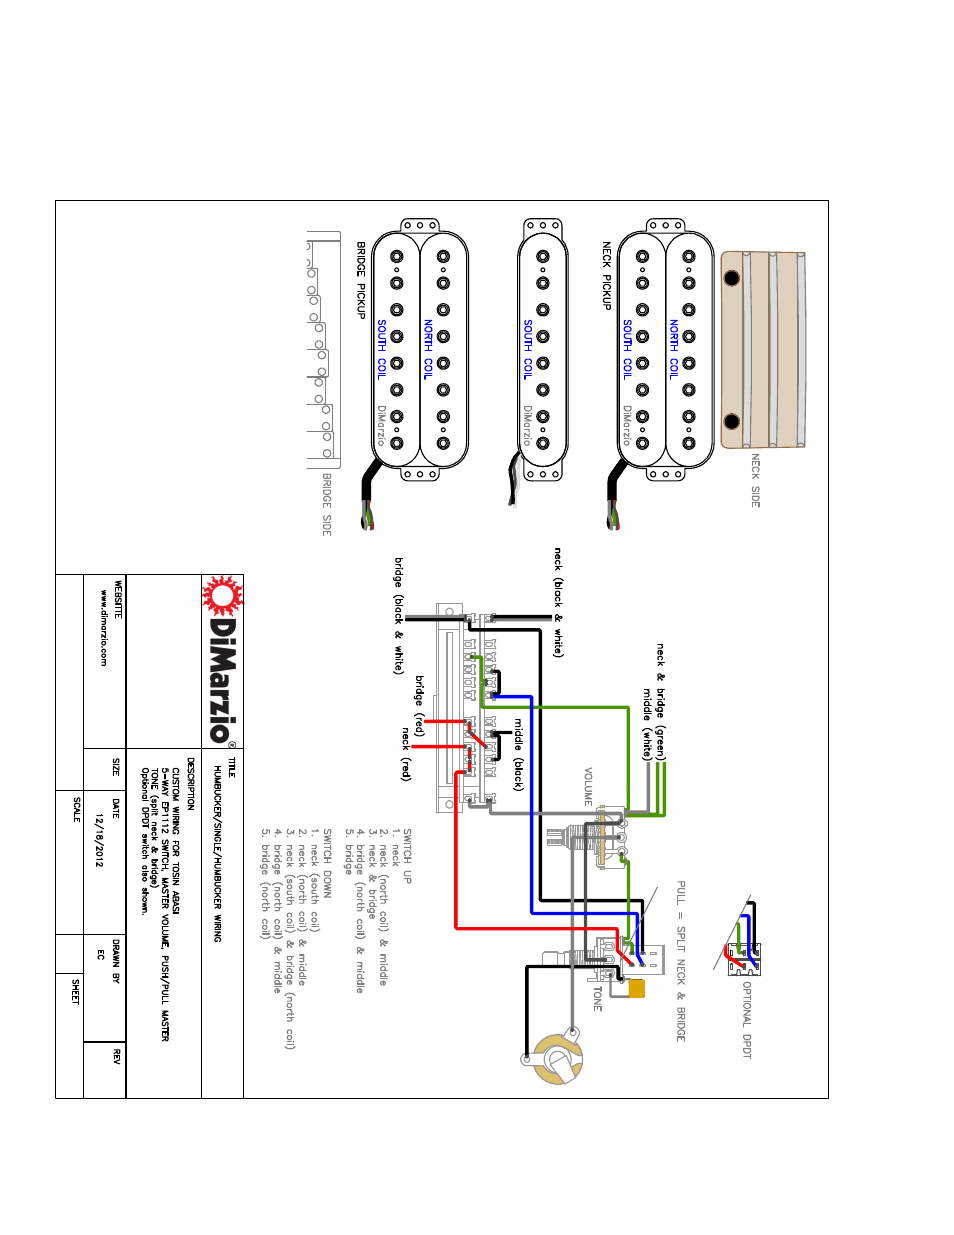 wiring diagram for ibanez blazer guitar ignition wire rg 550 body ~ elsalvadorla